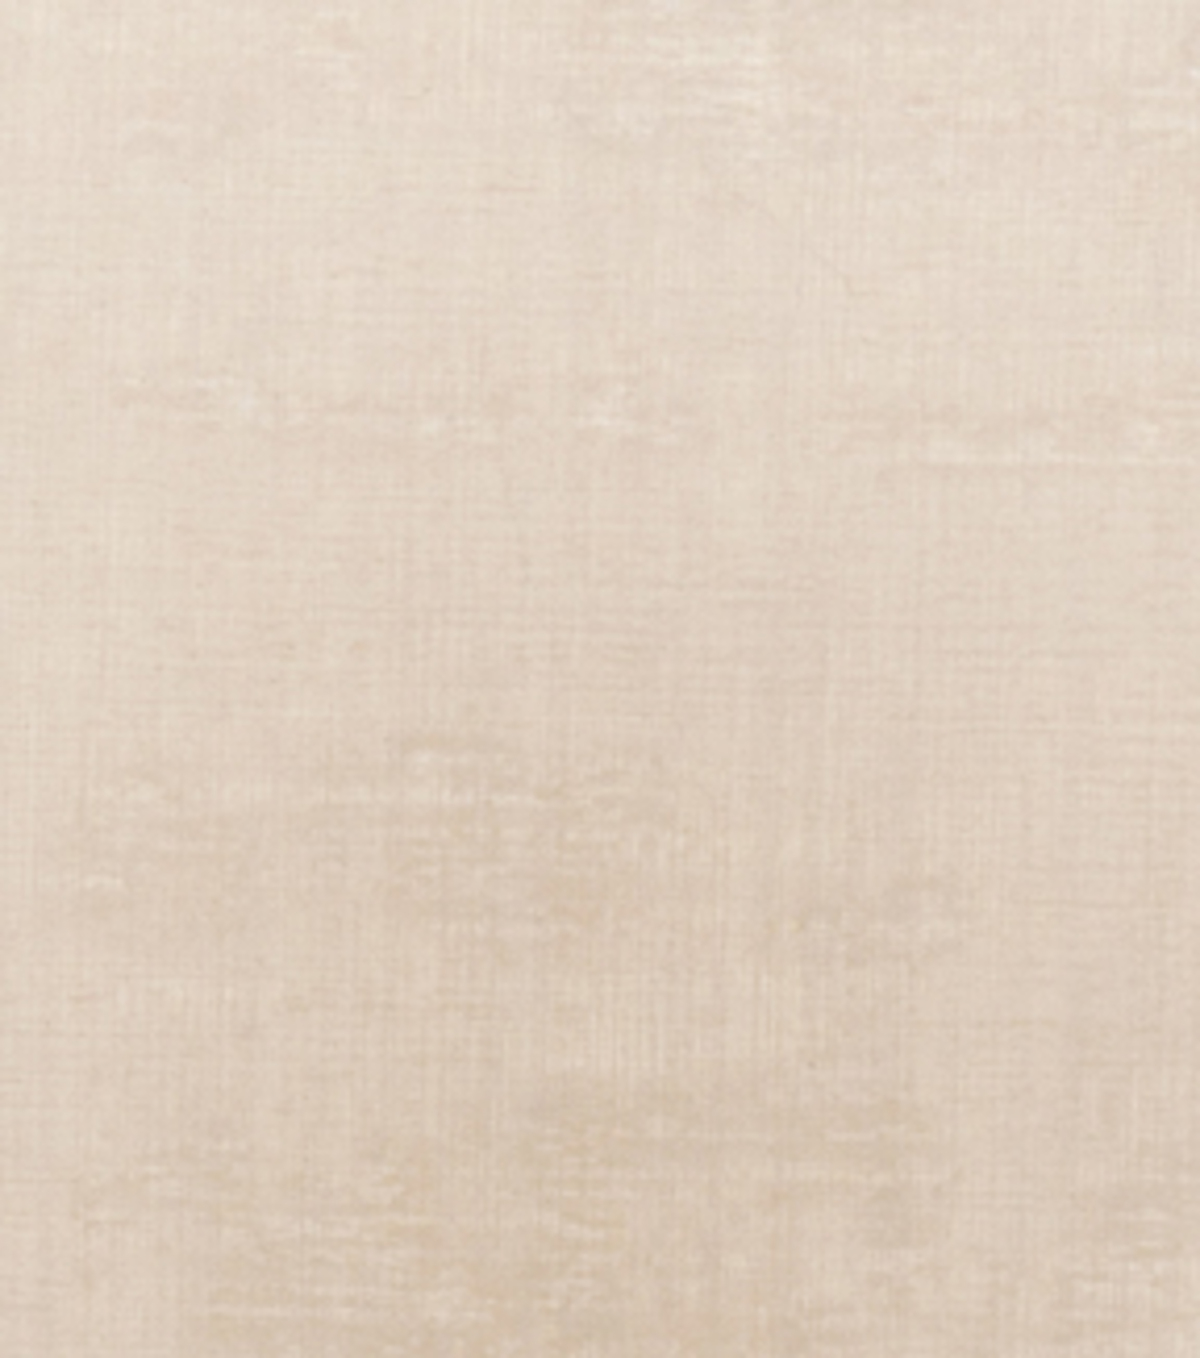 Home Decor 8\u0022x8\u0022 Fabric Swatch-Eaton Square Edna   Linen